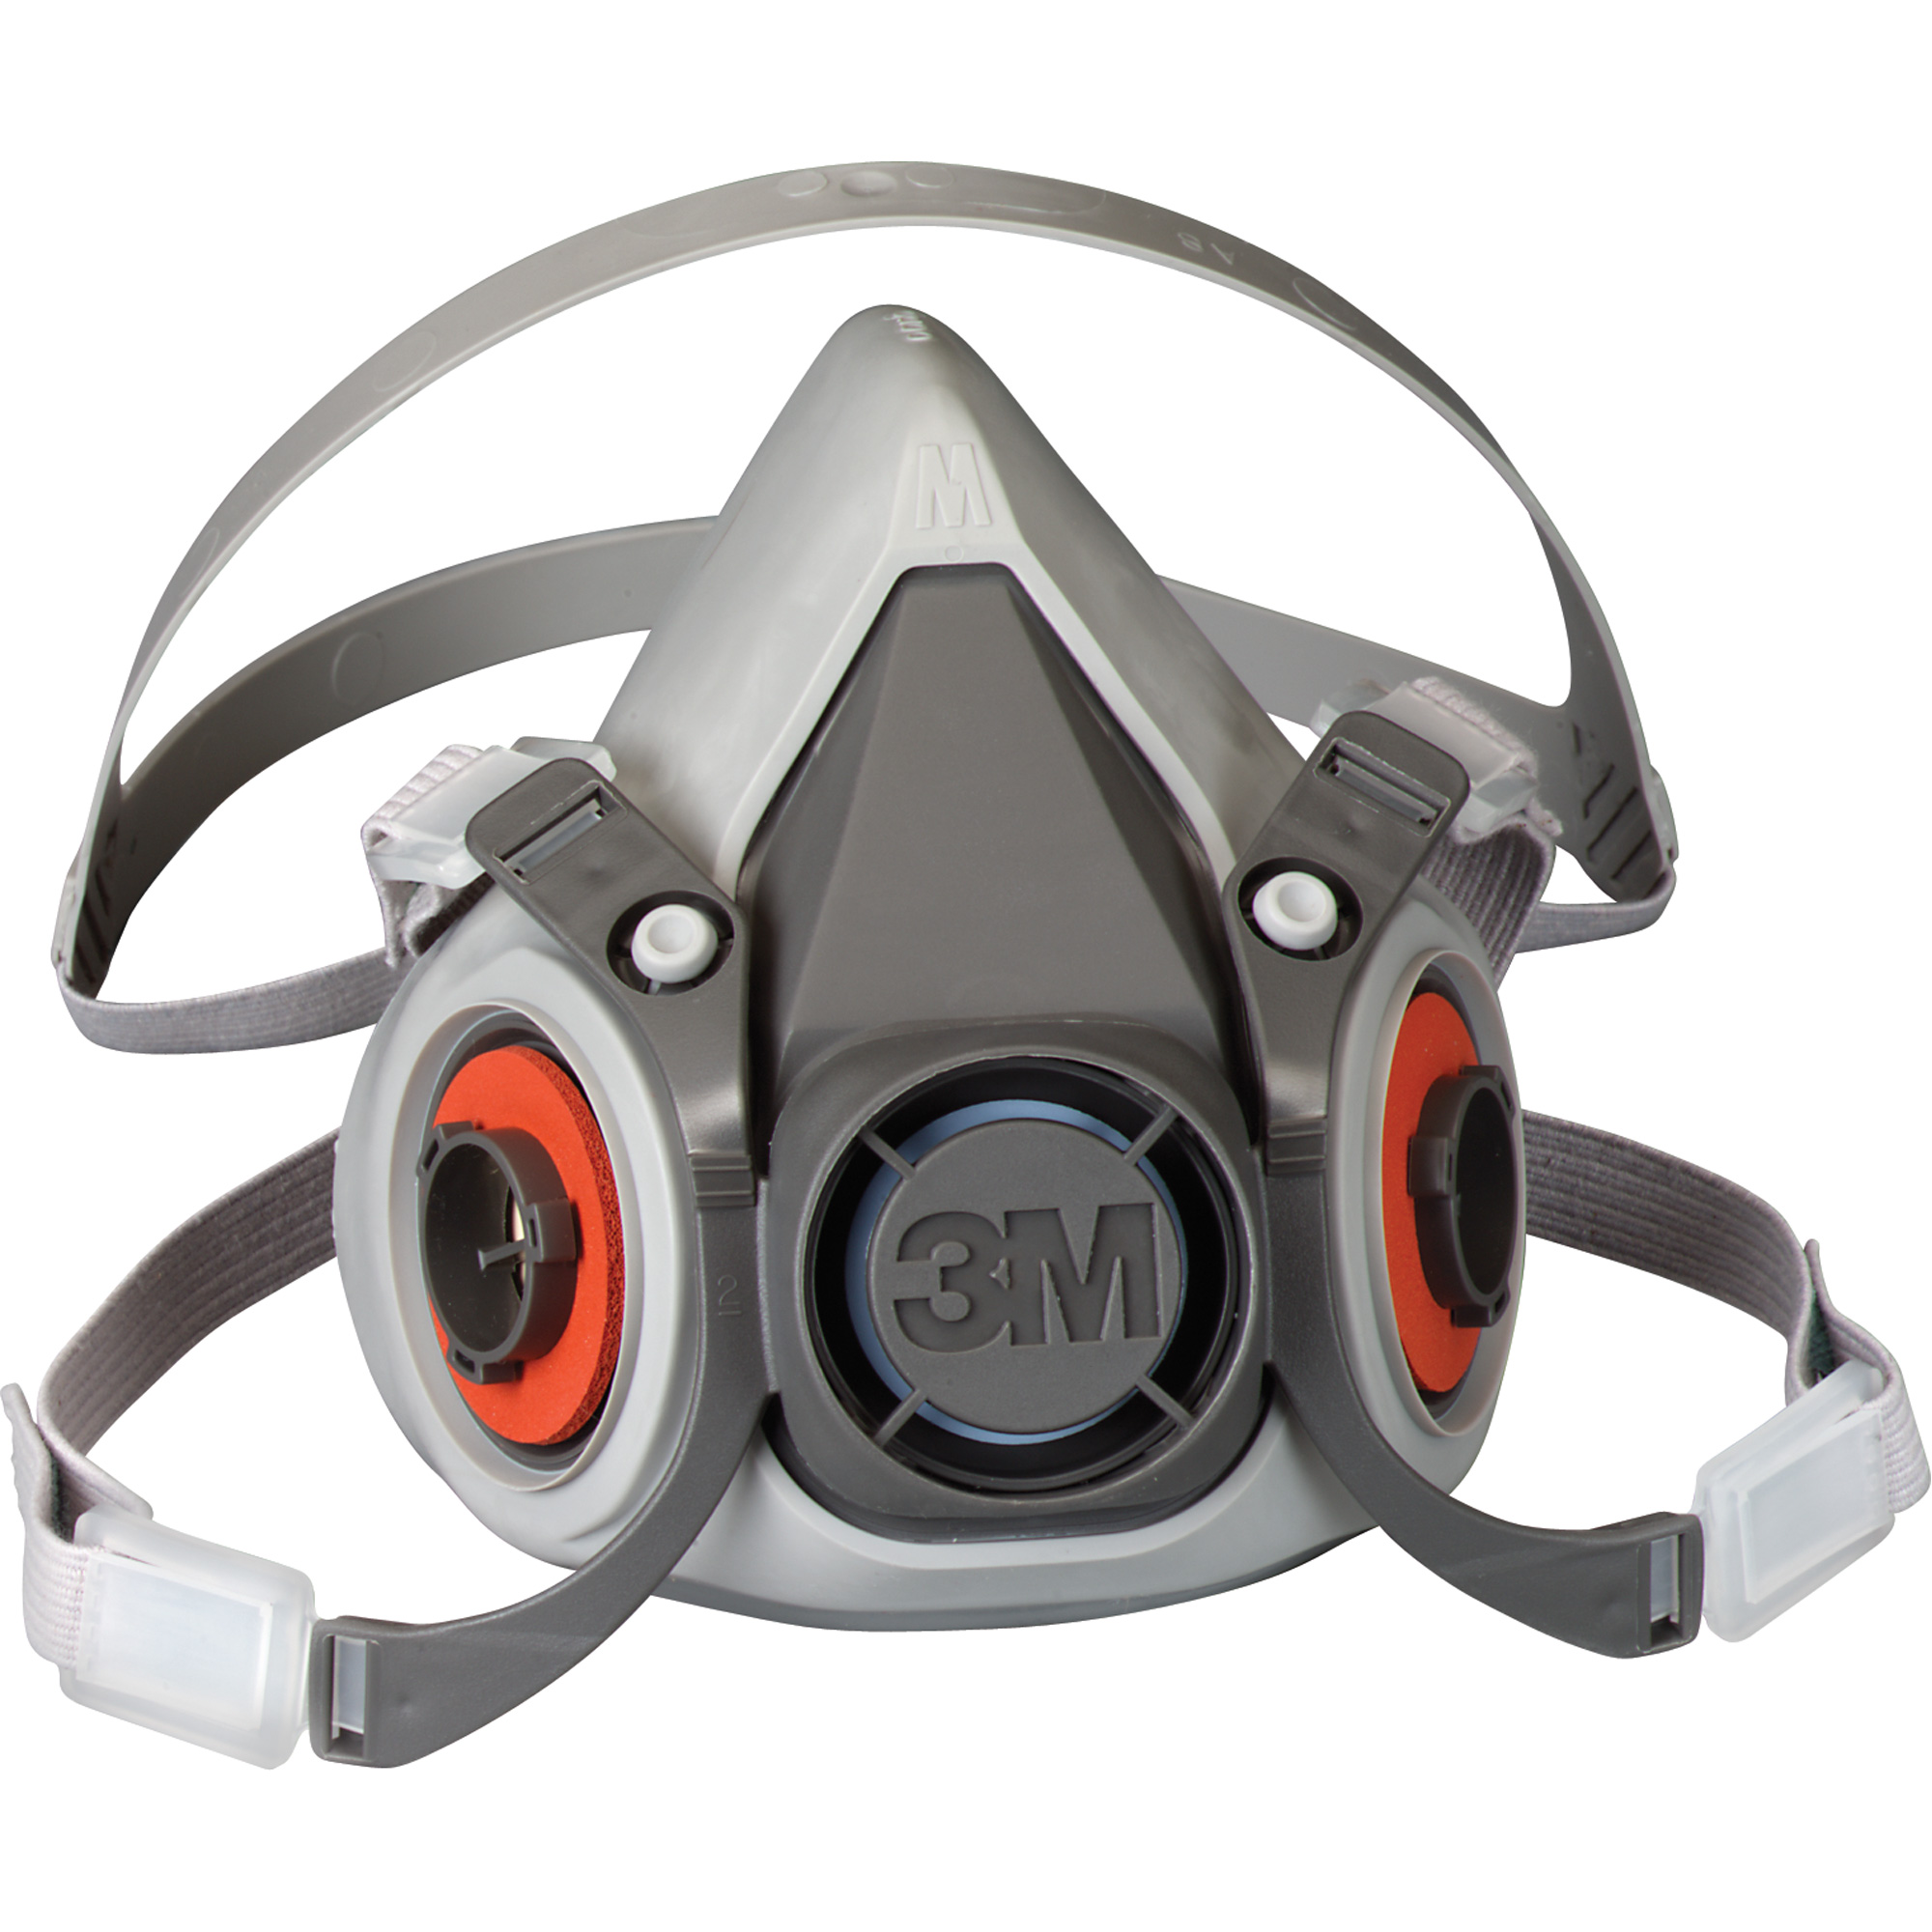 3M 6000 Series Half Facepiece Reusable Respirator Mask (Small)